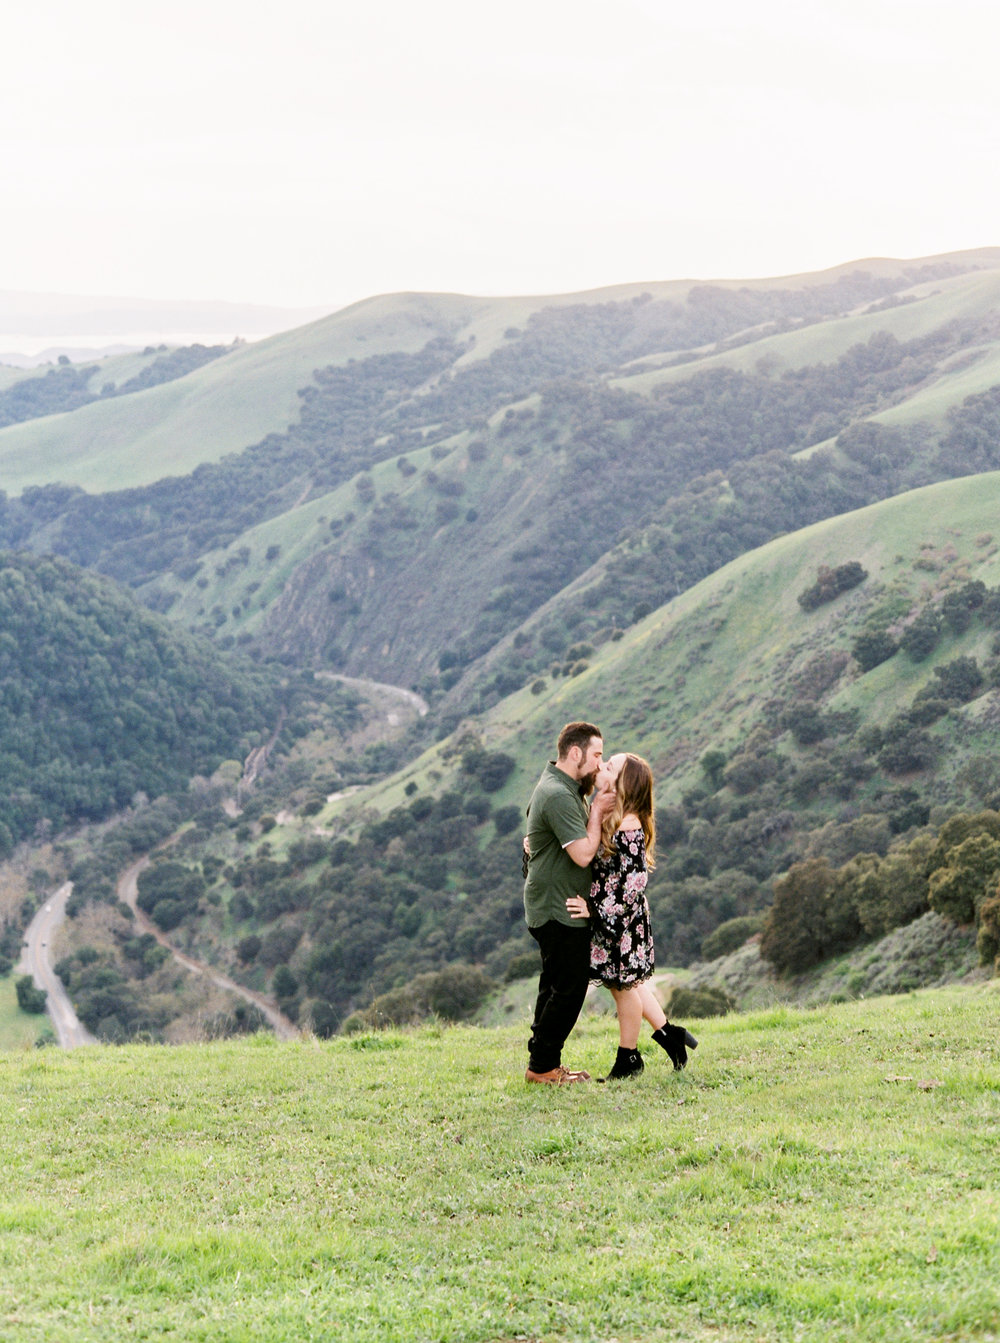 Sunol California Engagement Shoot - Kristine Herman Photography-20.jpg